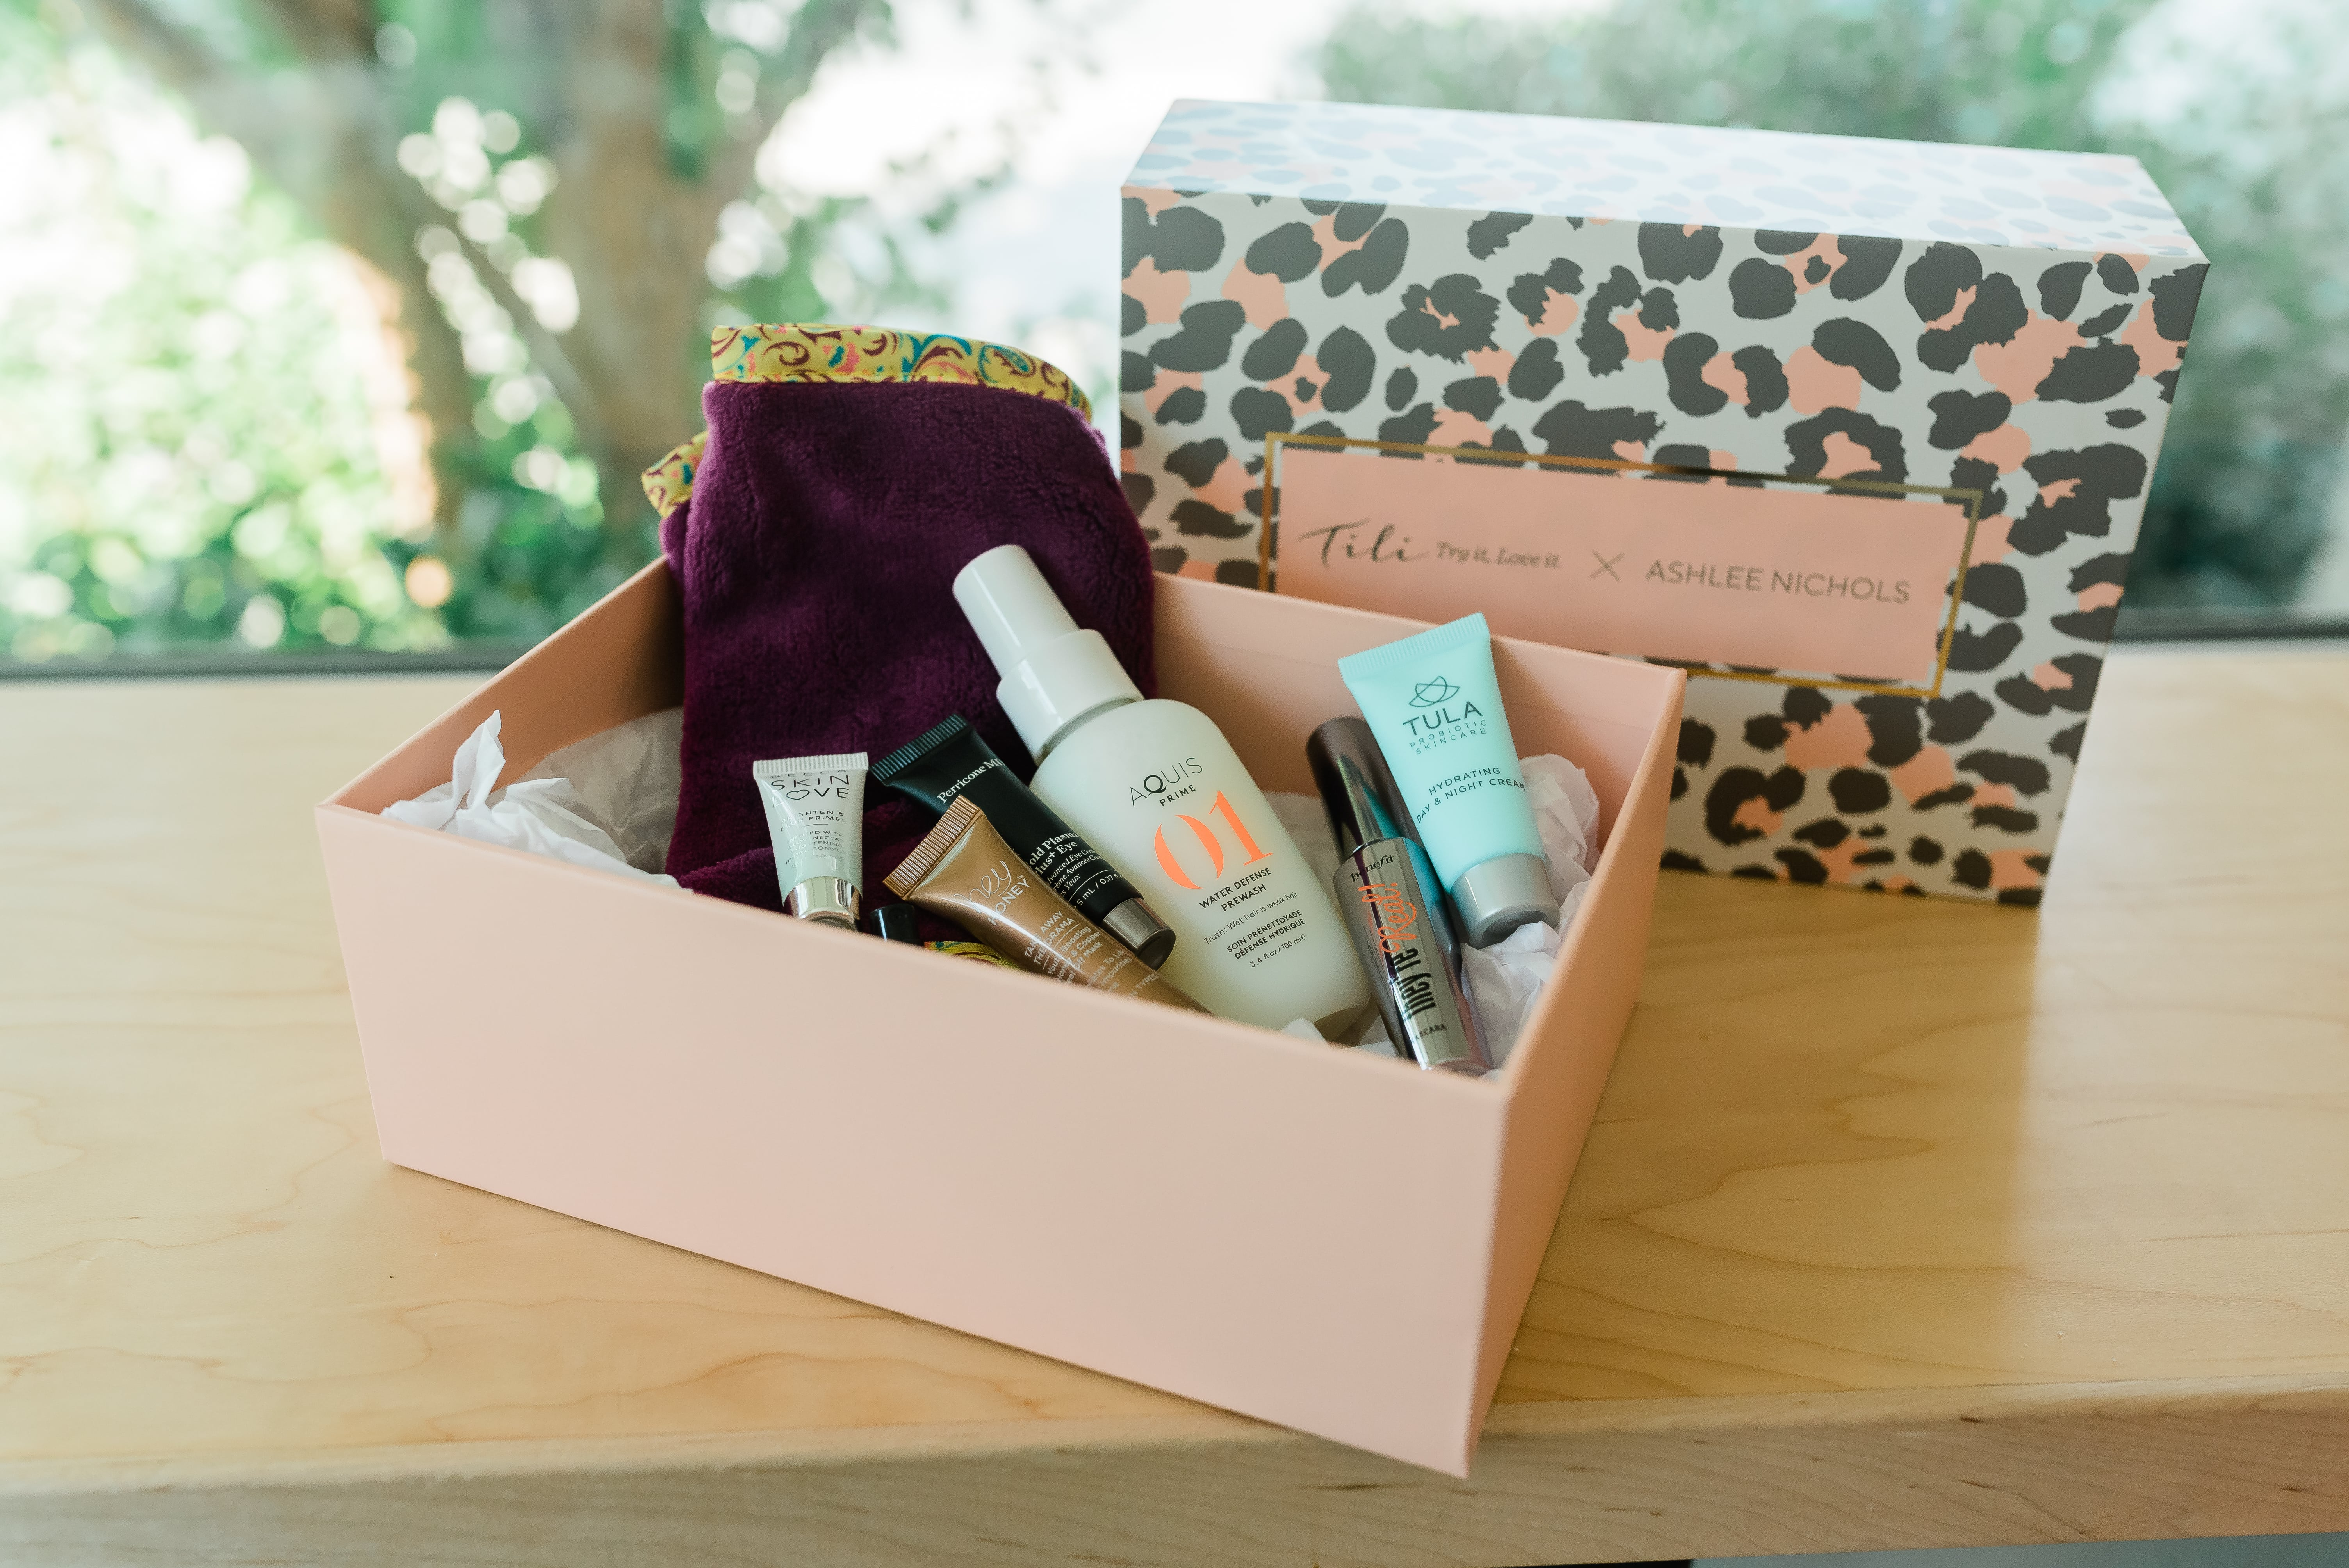 Life & Style blogger Ashlee Nichols from Little Lovelies Blog designs and curates a TILI beauty box with QVC. She features beauty, makeup, and bath items.